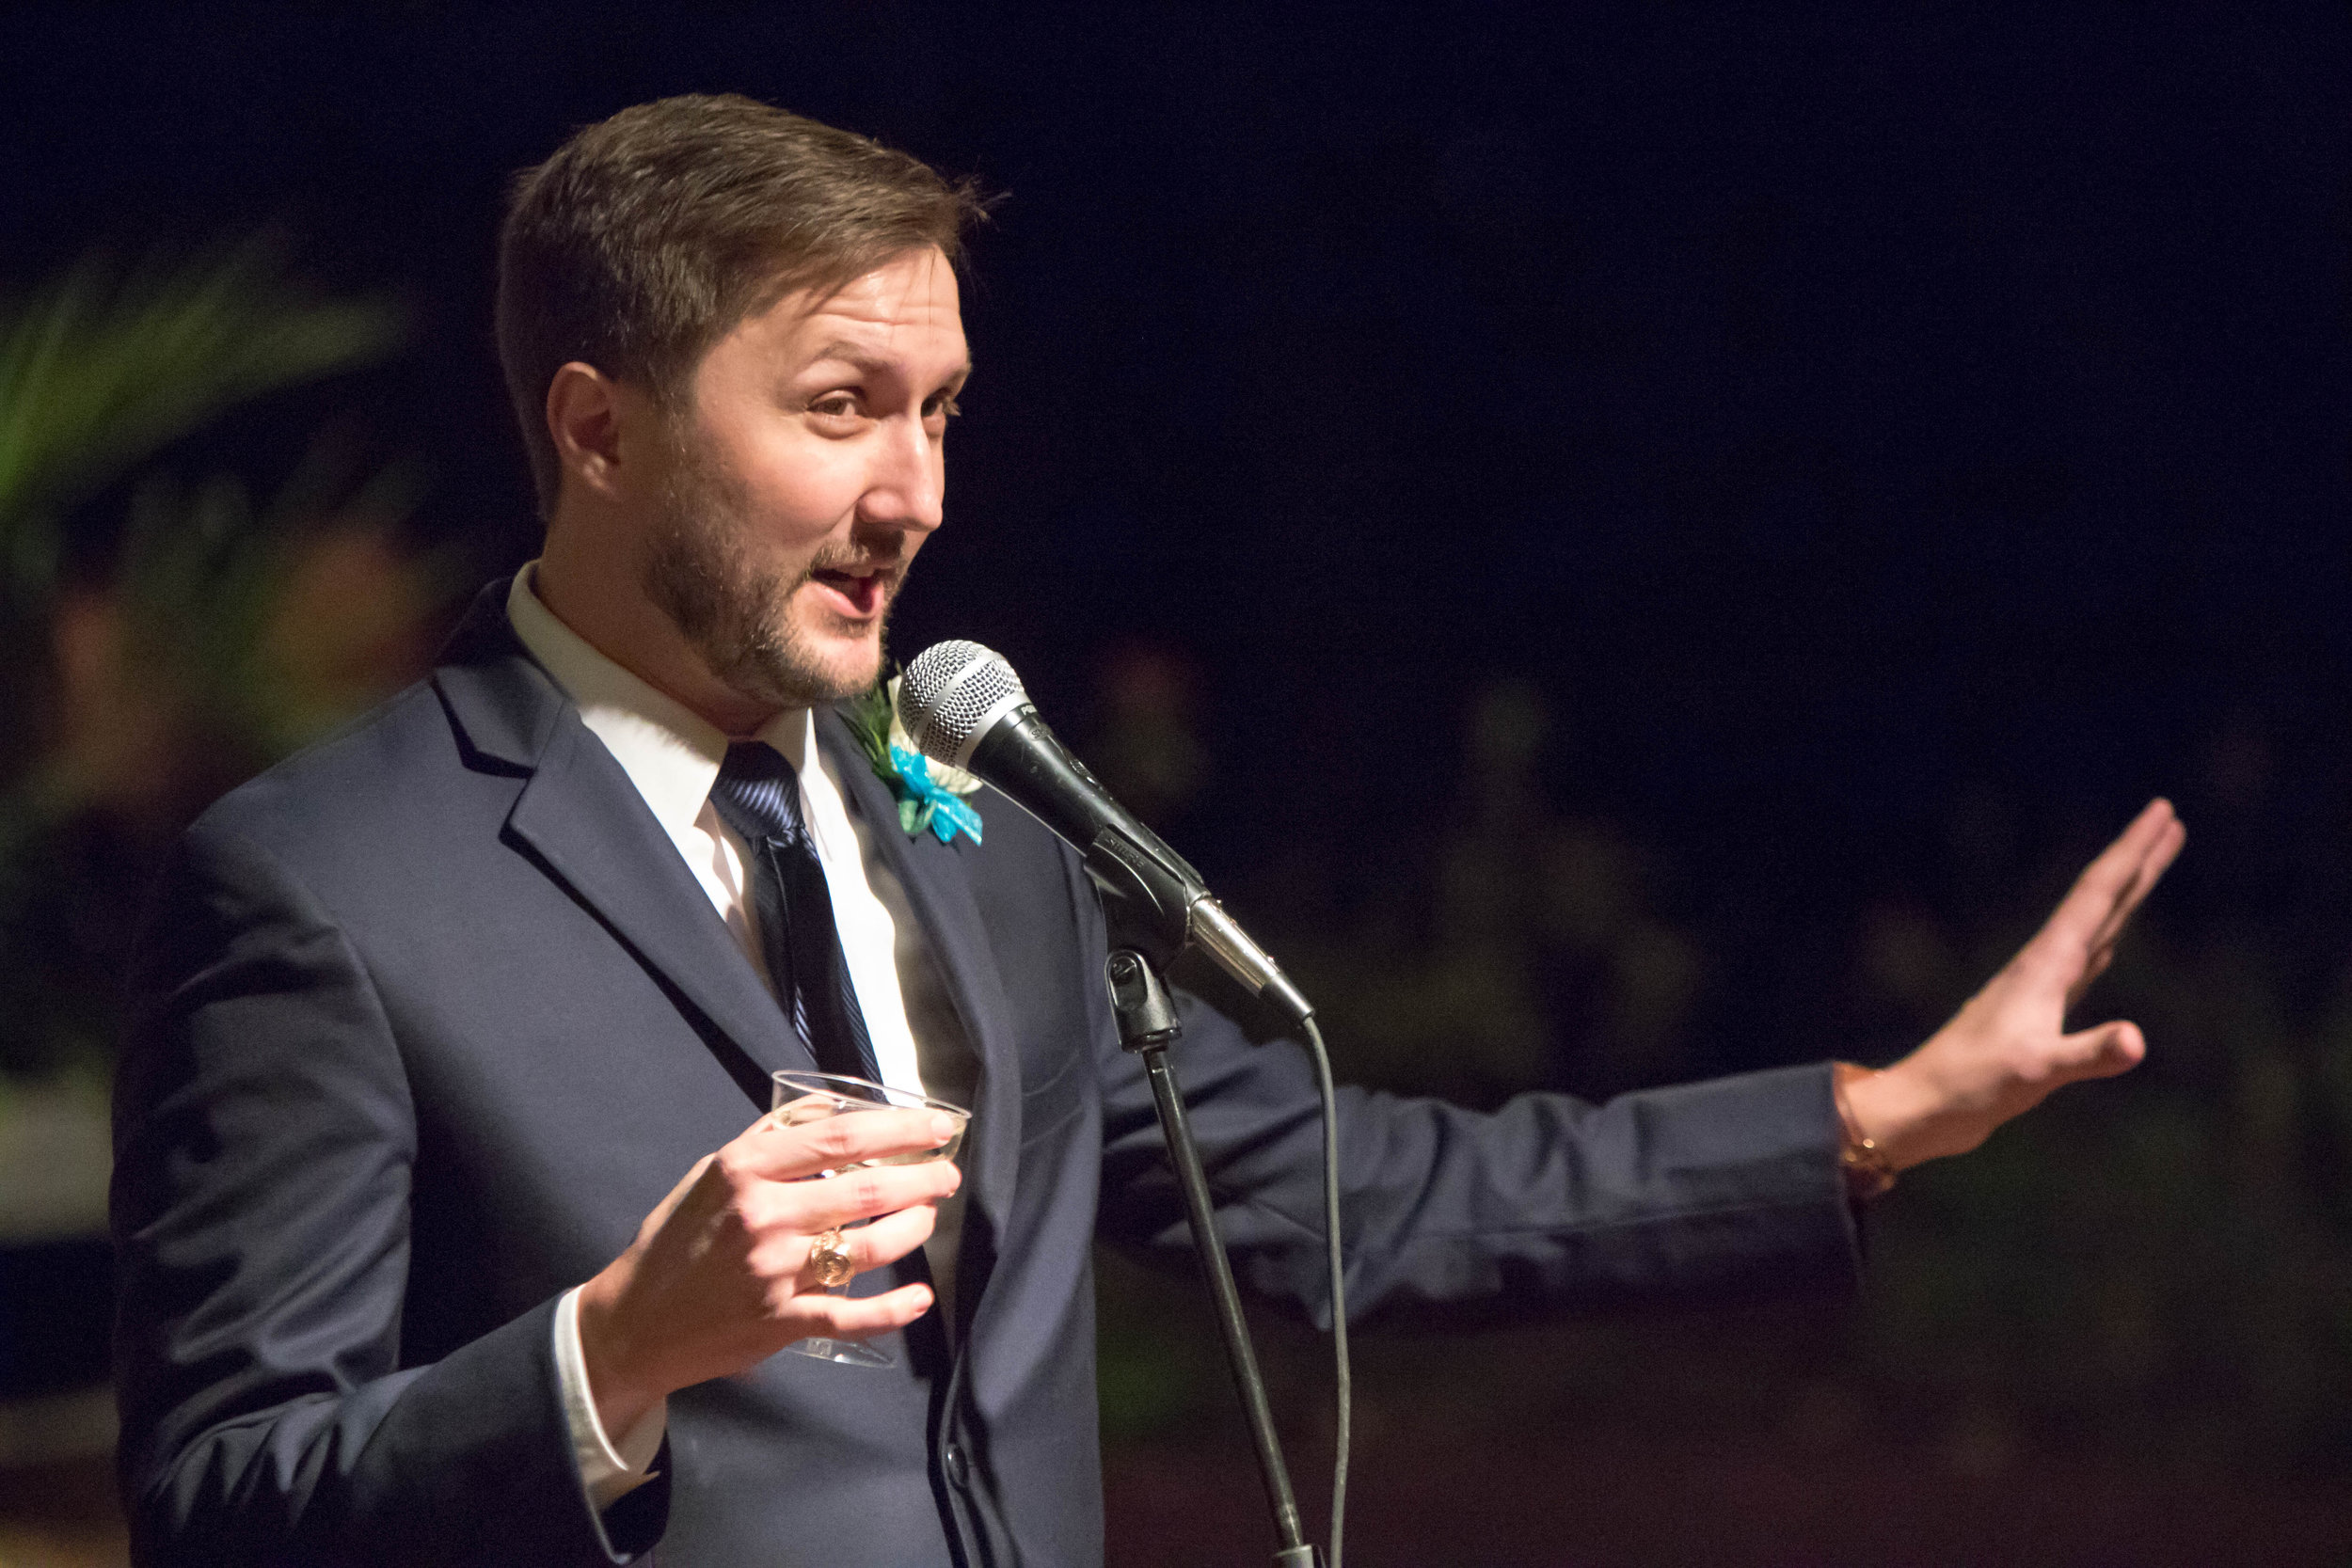 Clint Buck delivering Best Man speech at Hollis and Lindsey's wedding. San Antonio, TX February 2017